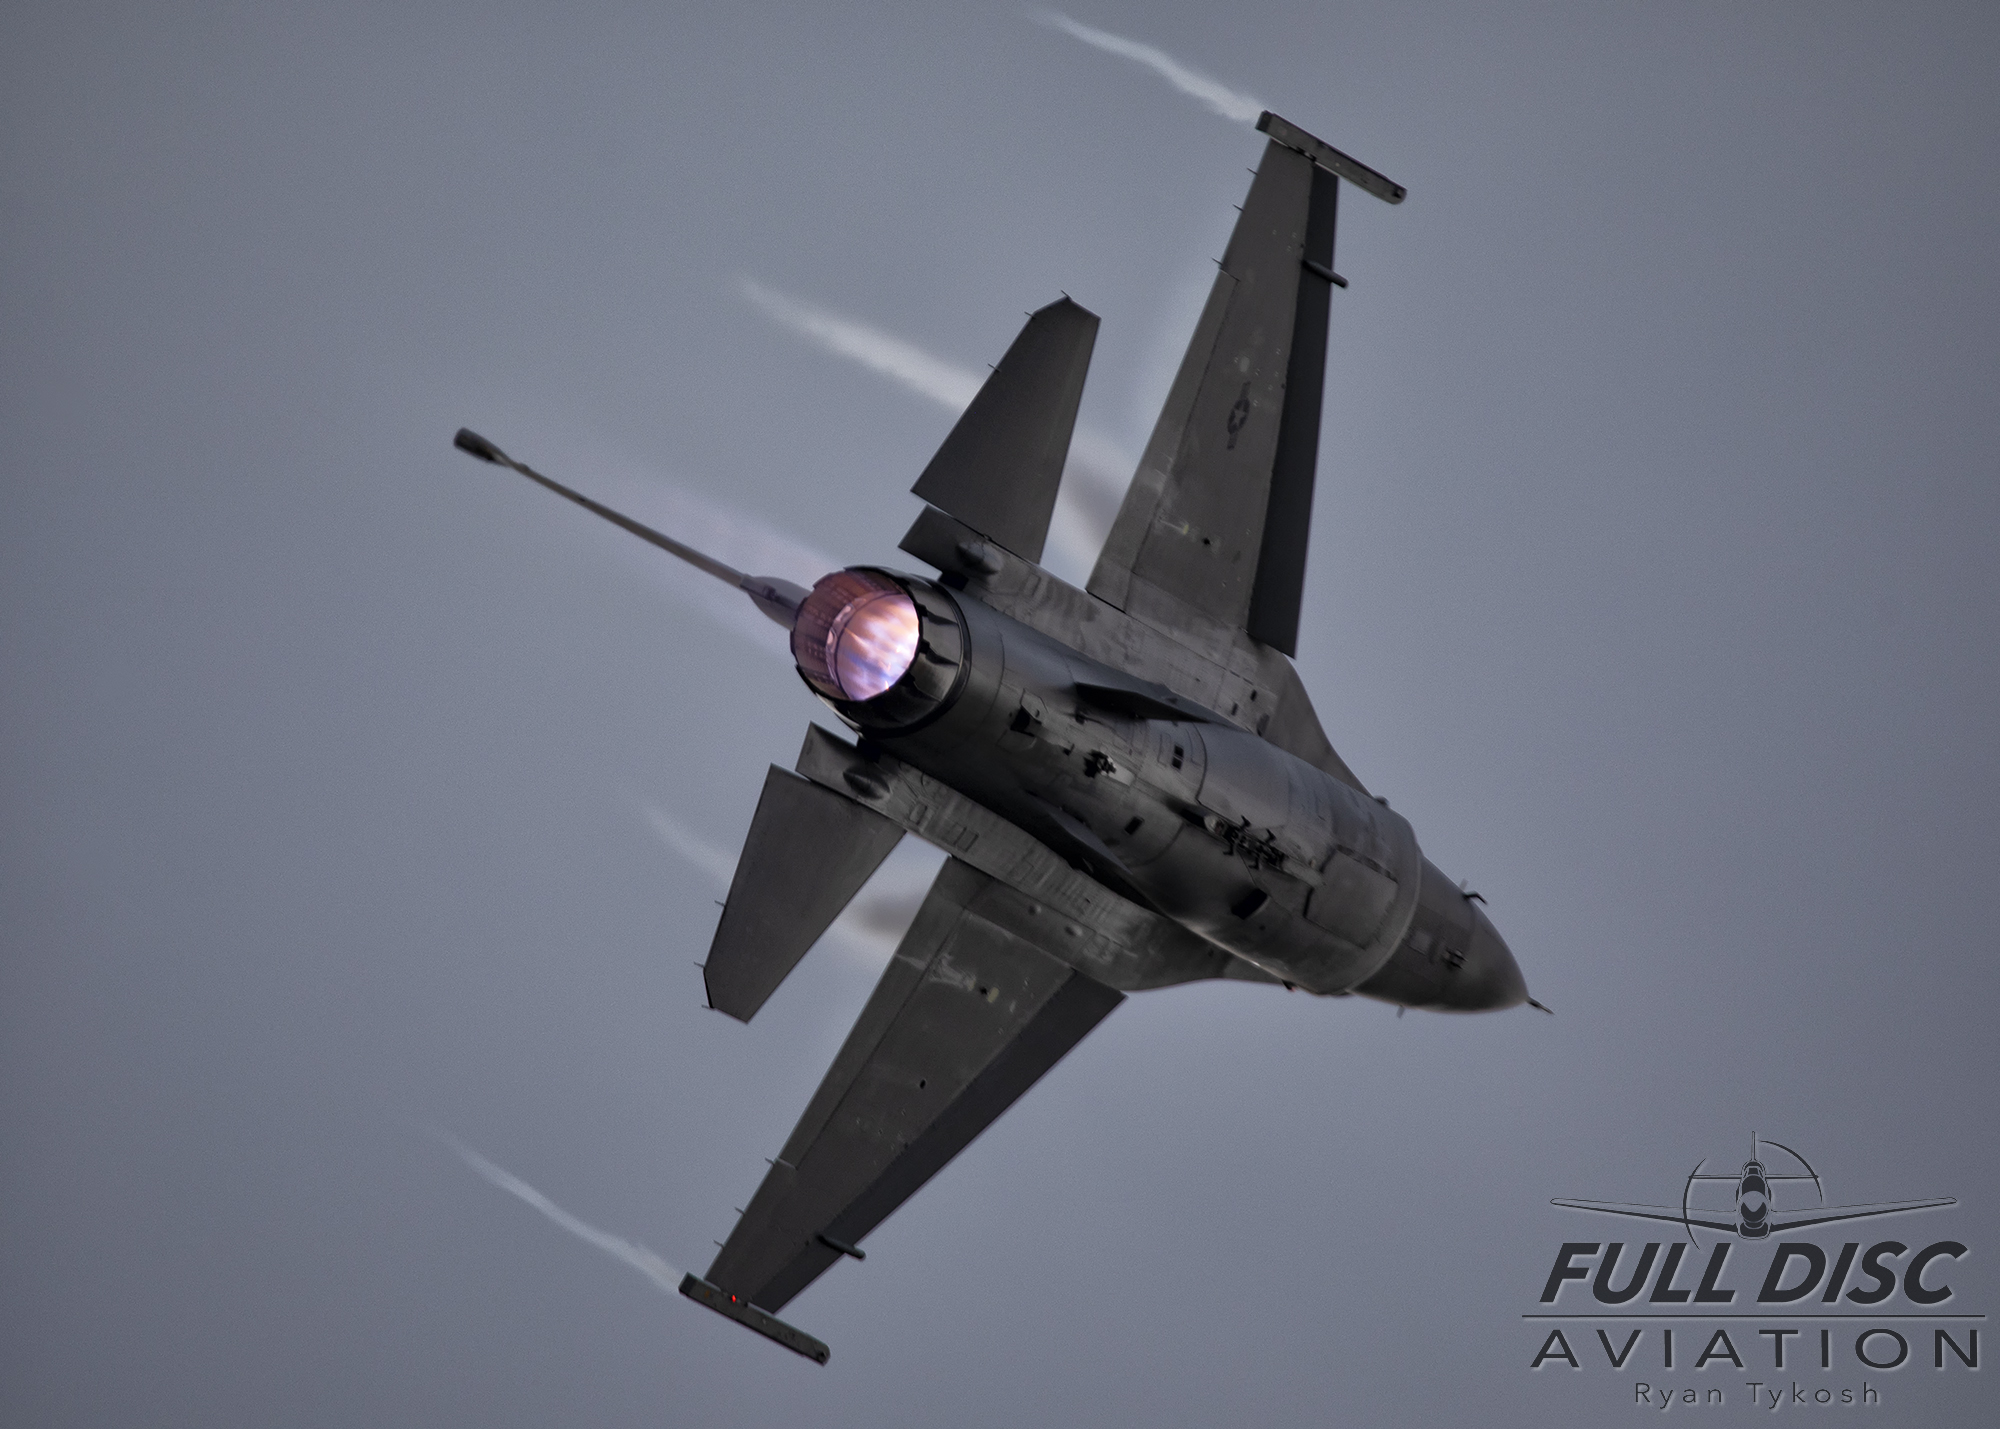 lbe19-fdartykosh-f16demo2-burner.jpg